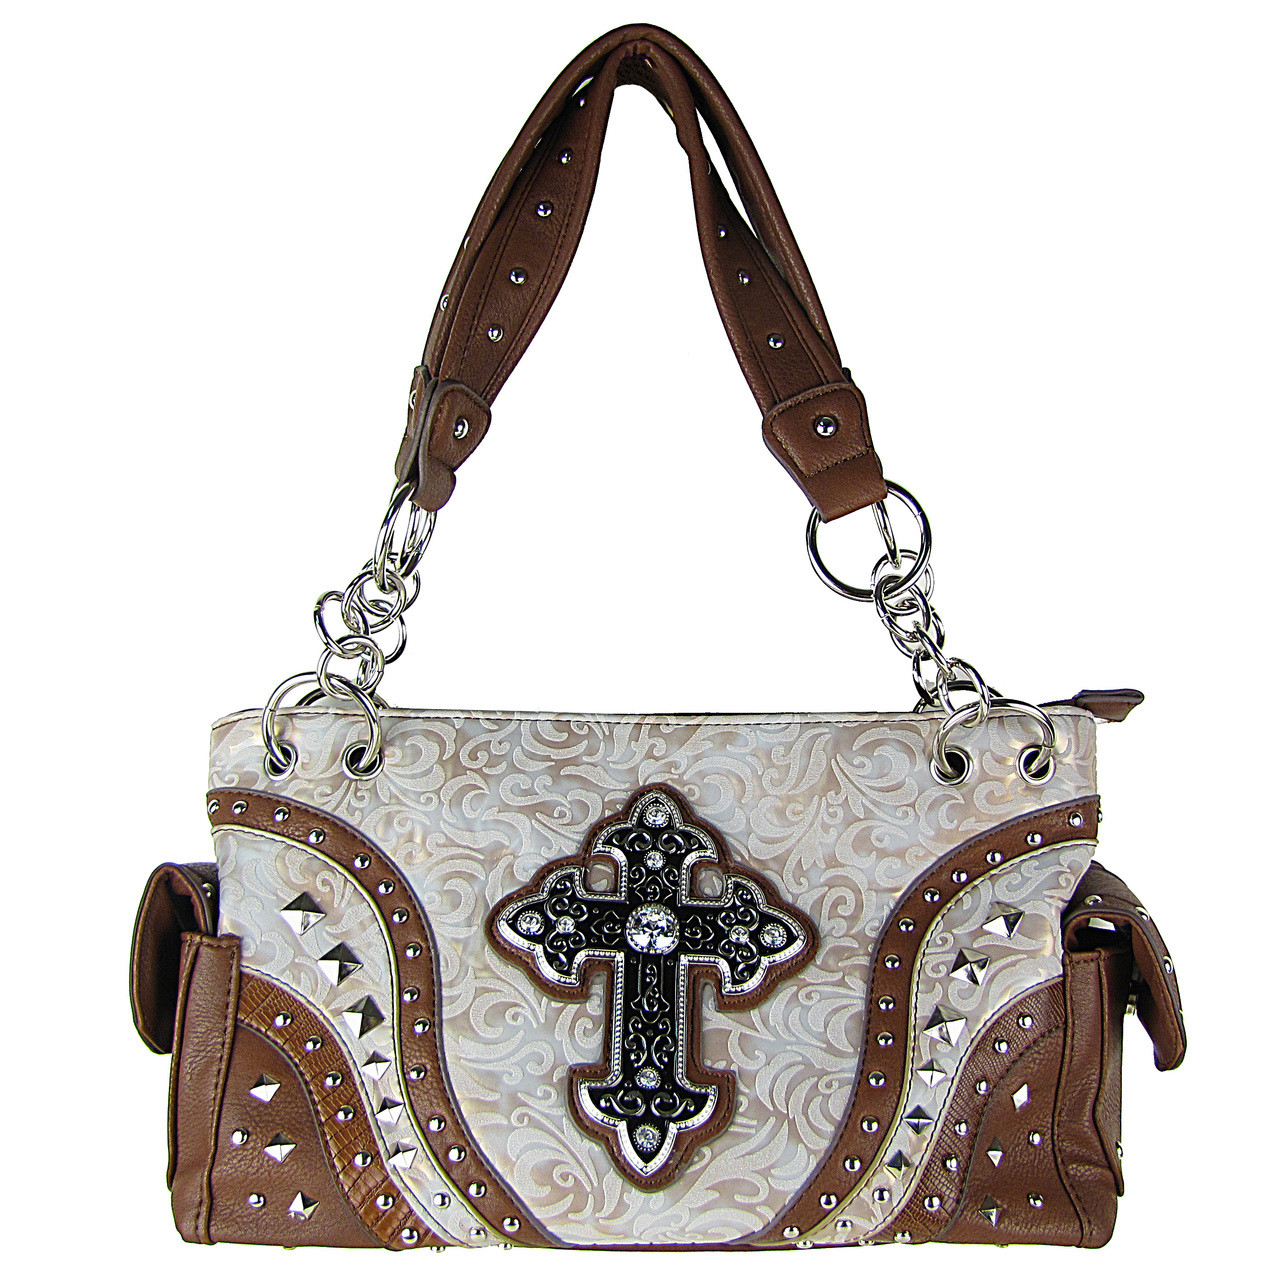 BEIGE METALLIC PAISLEY STUDDED RHINESTONE CROSS LOOK SHOULDER HANDBAG HB1-90LCRBEI